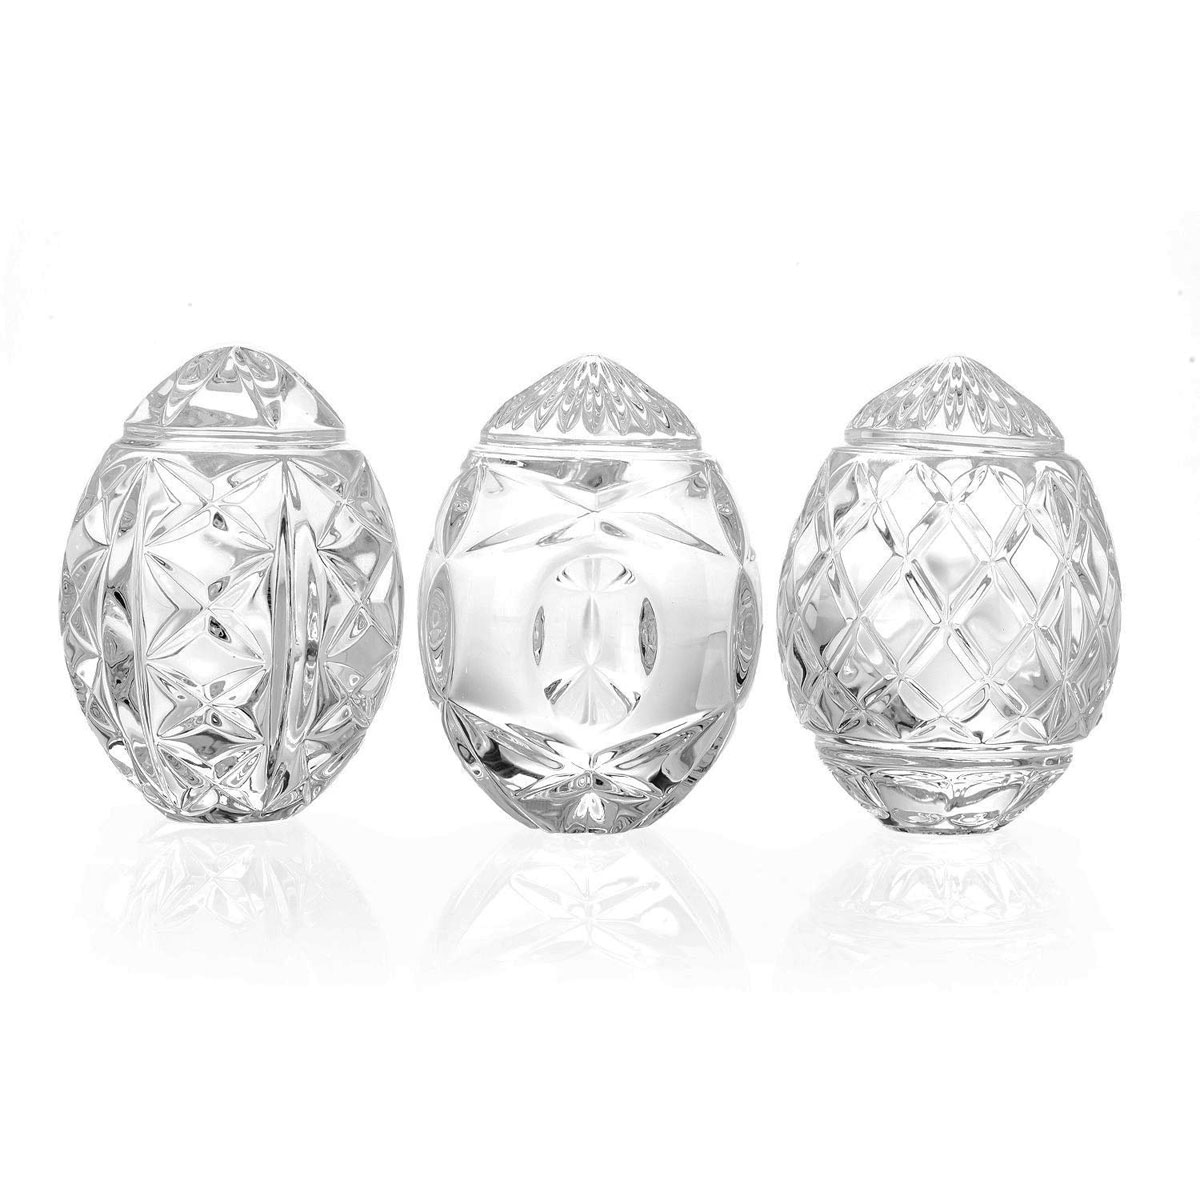 Waterford Crystal Egg Collectibles, Set of Three